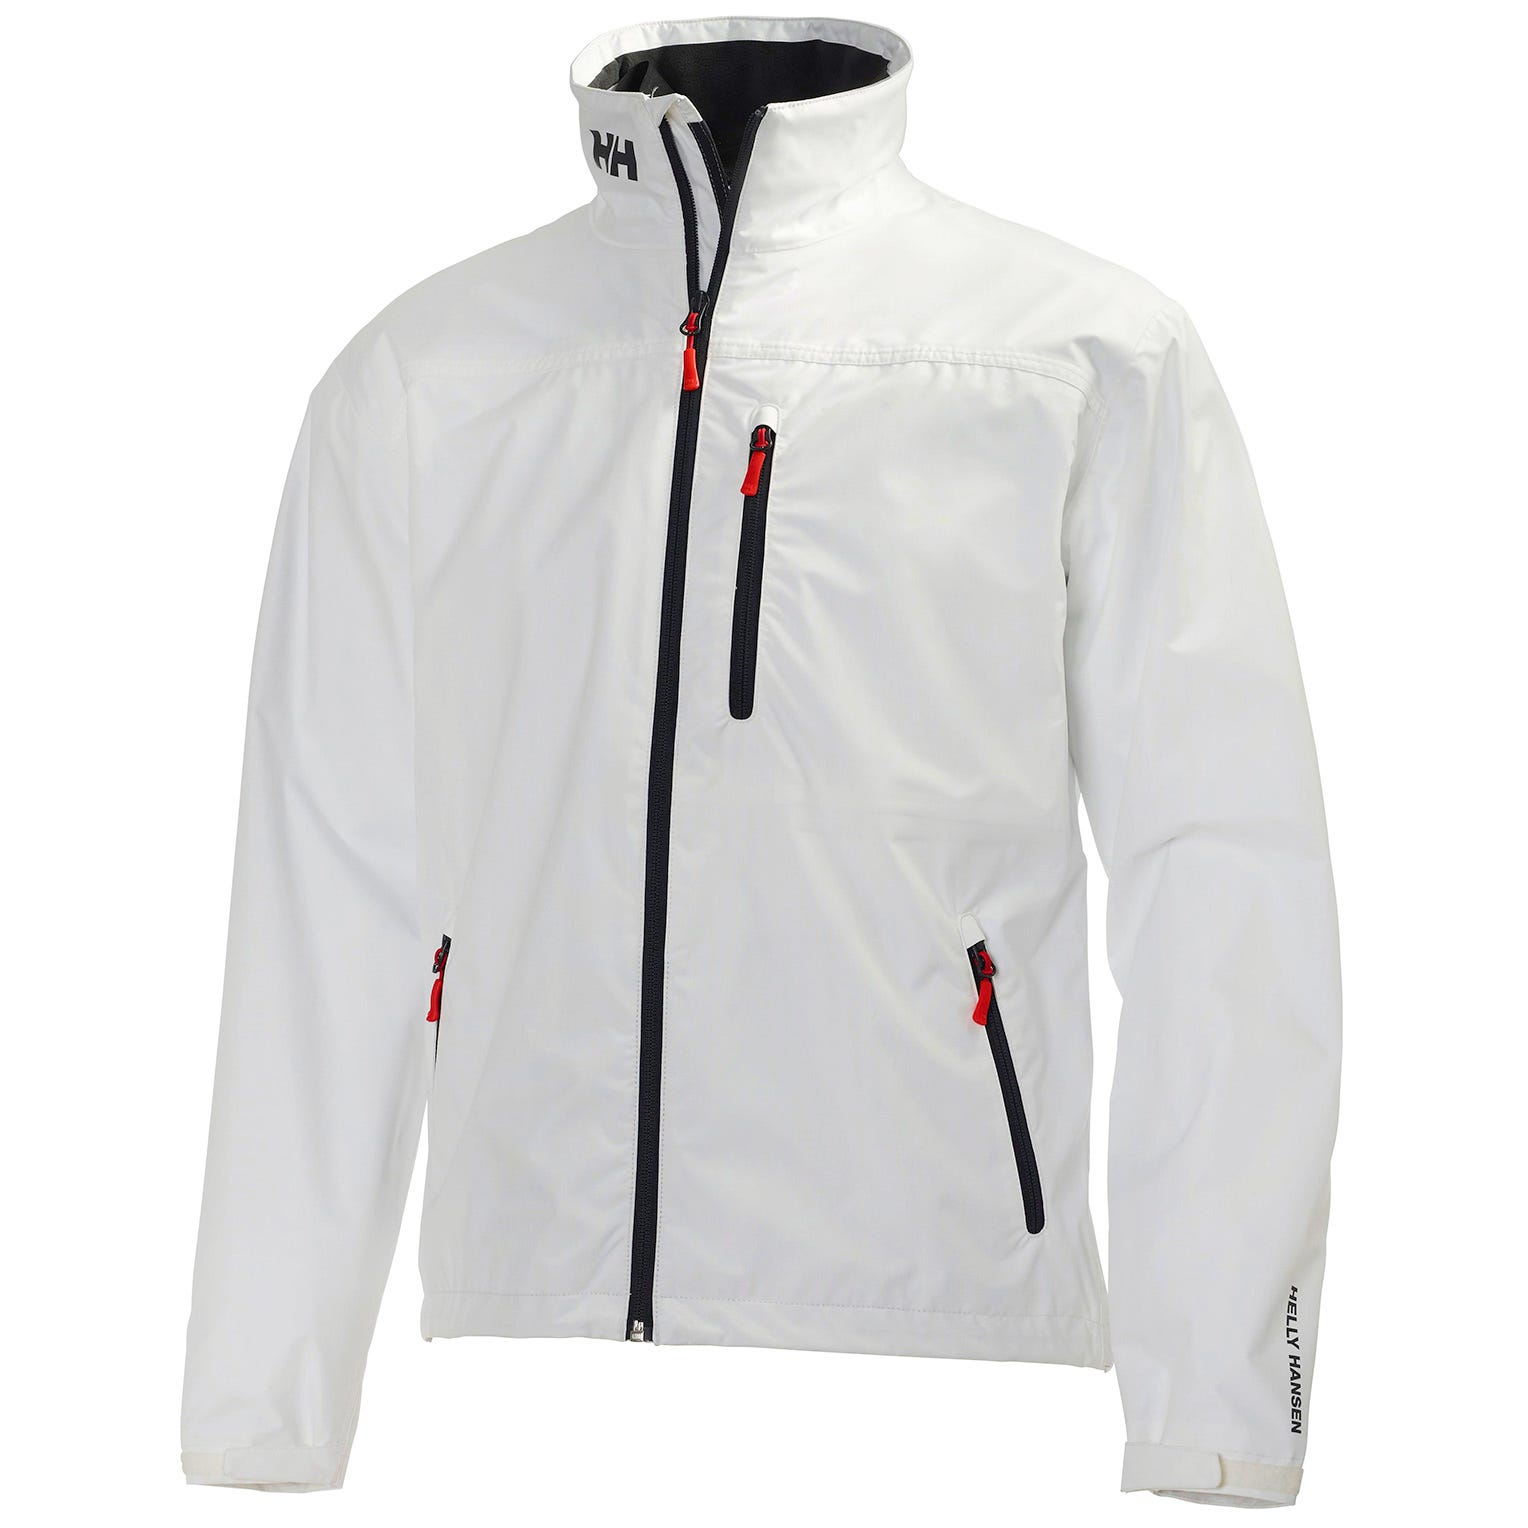 Helly Hansen Mens Crew Sailing Jacket White XS